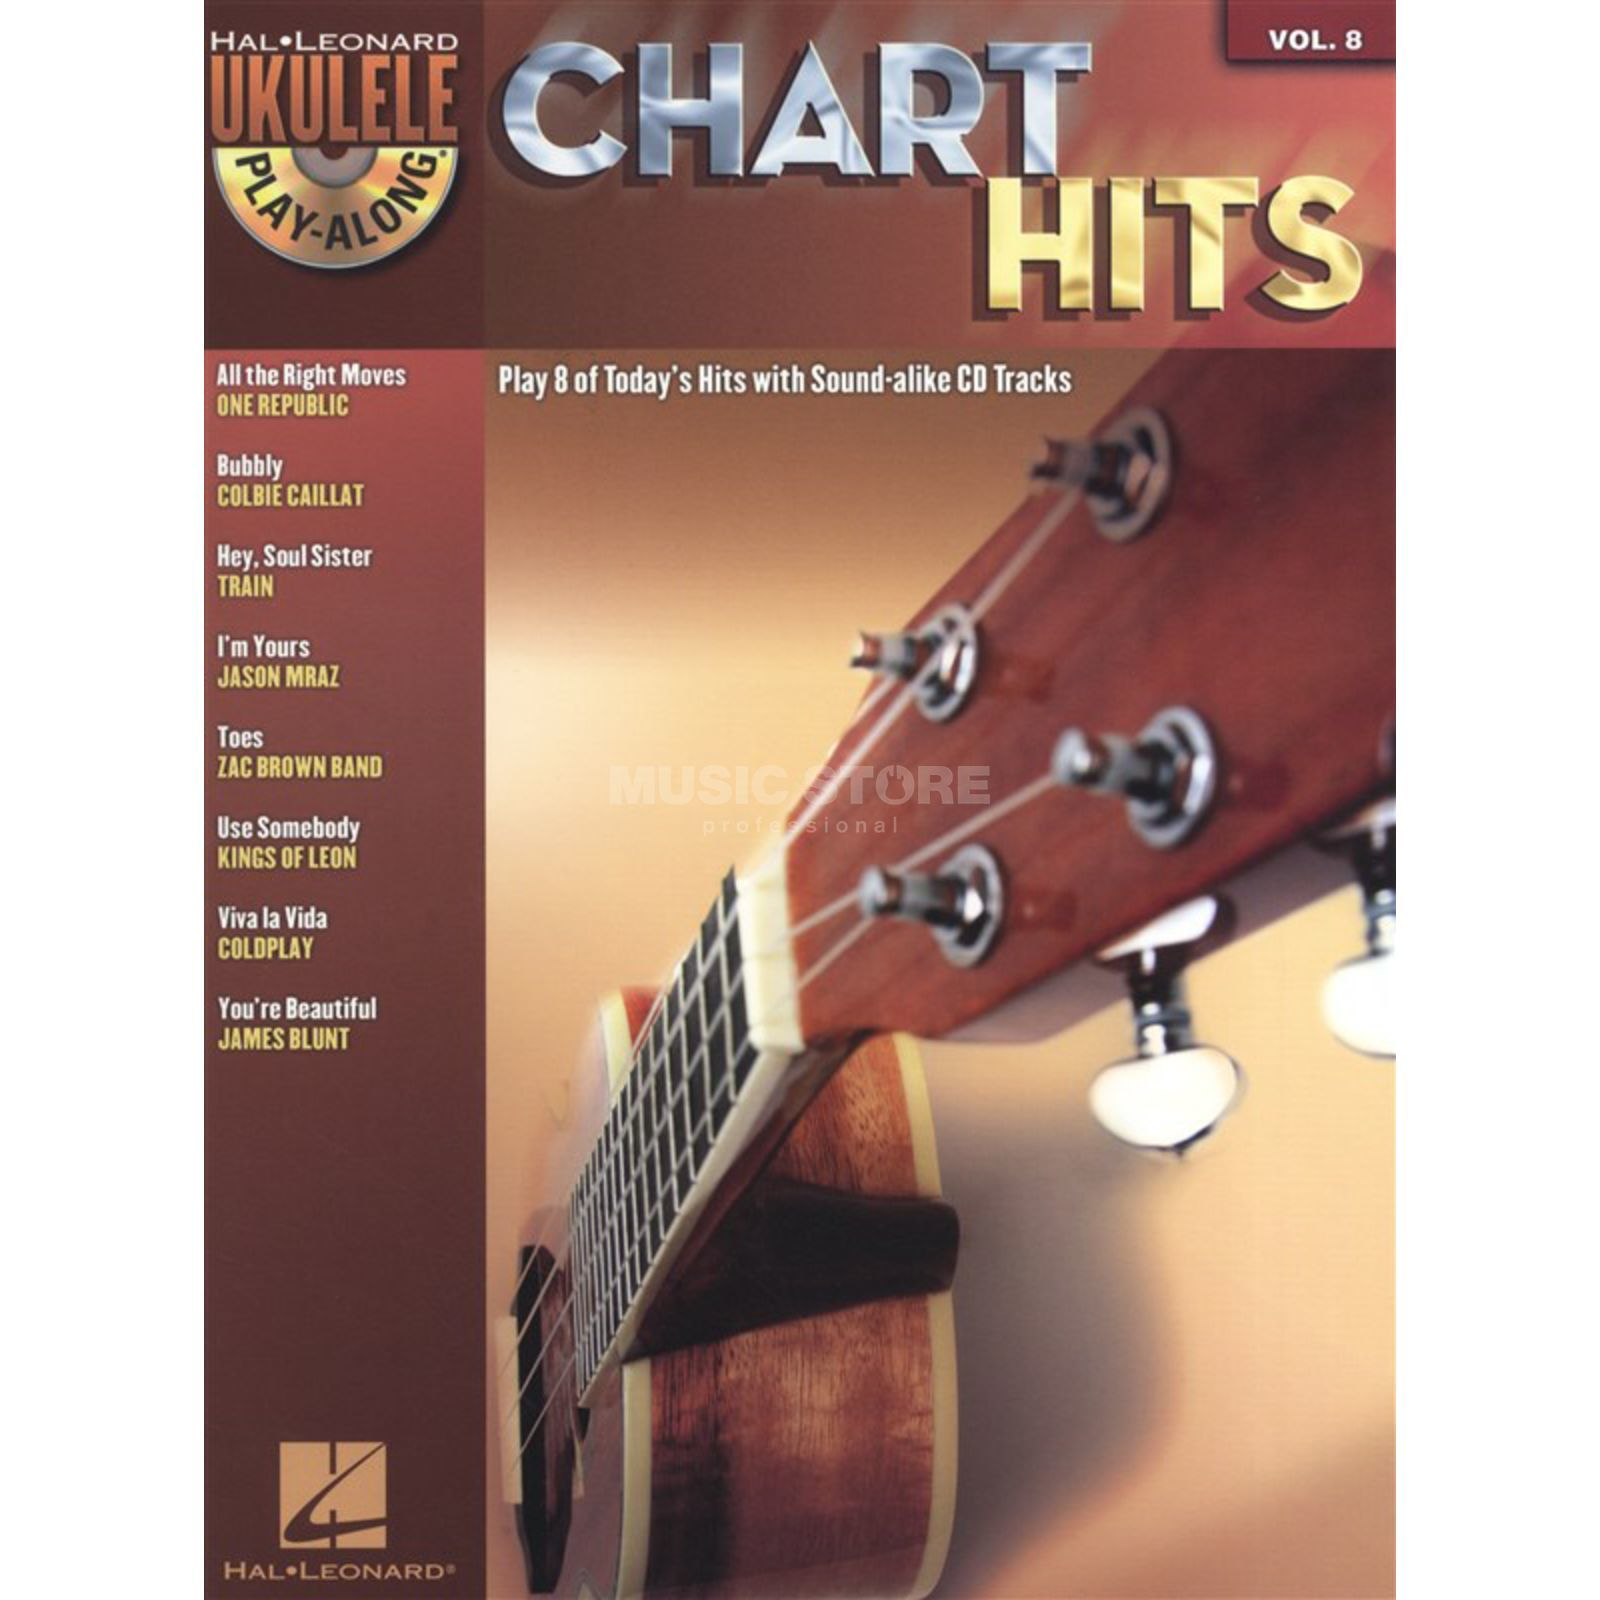 Hal Leonard Ukulele Play-Along: Chart Hits Vol. 8, Ukulele incl. CD Product Image